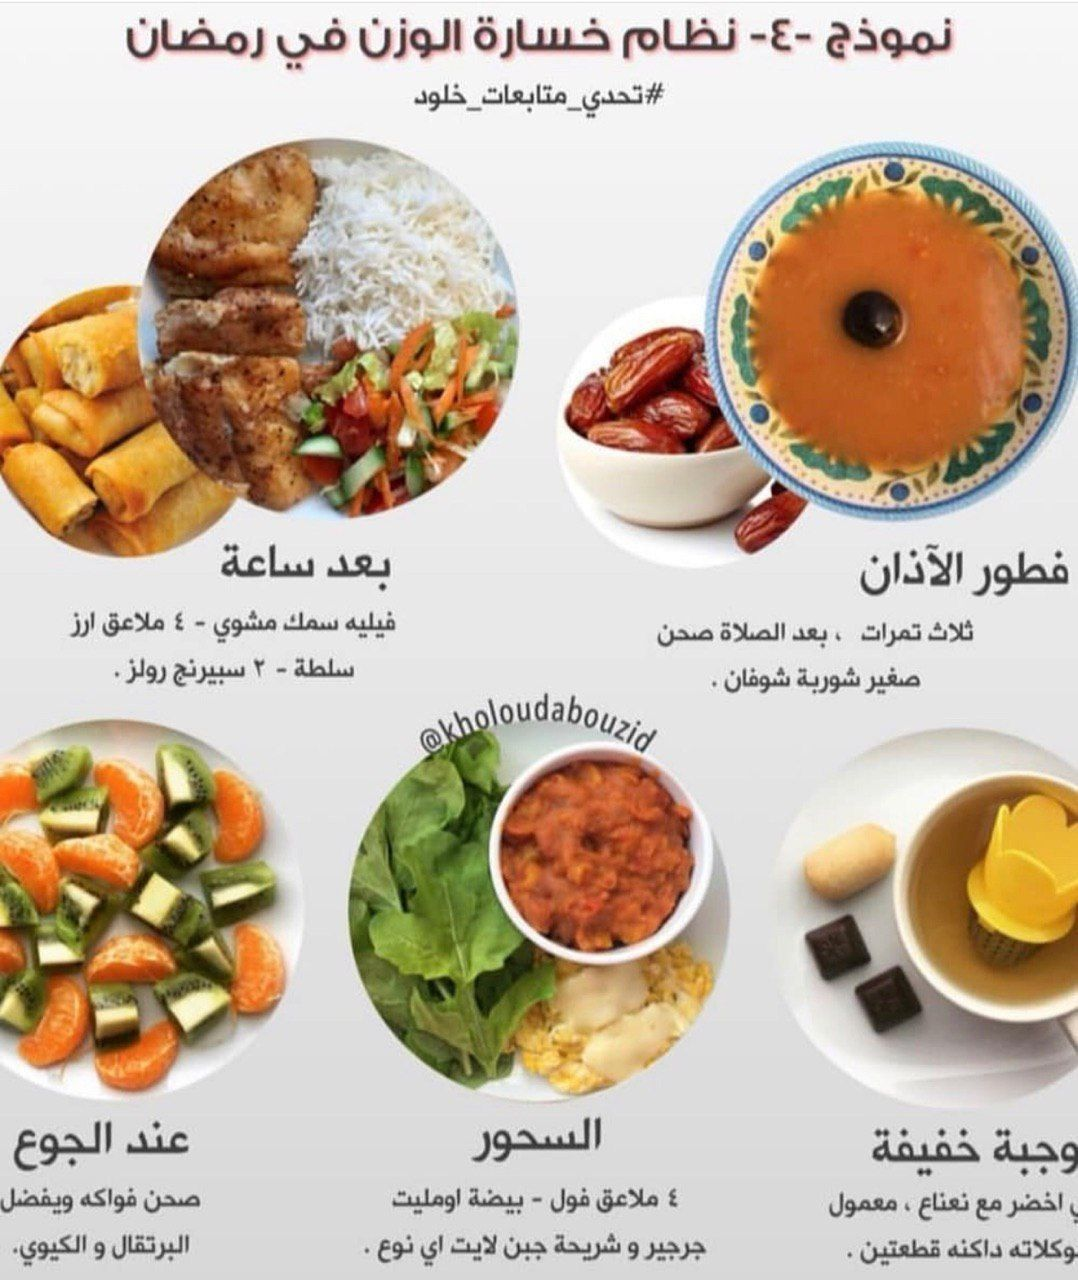 Pin By سيده الذوق On دواء Health Facts Food Health Eating Health Fitness Food